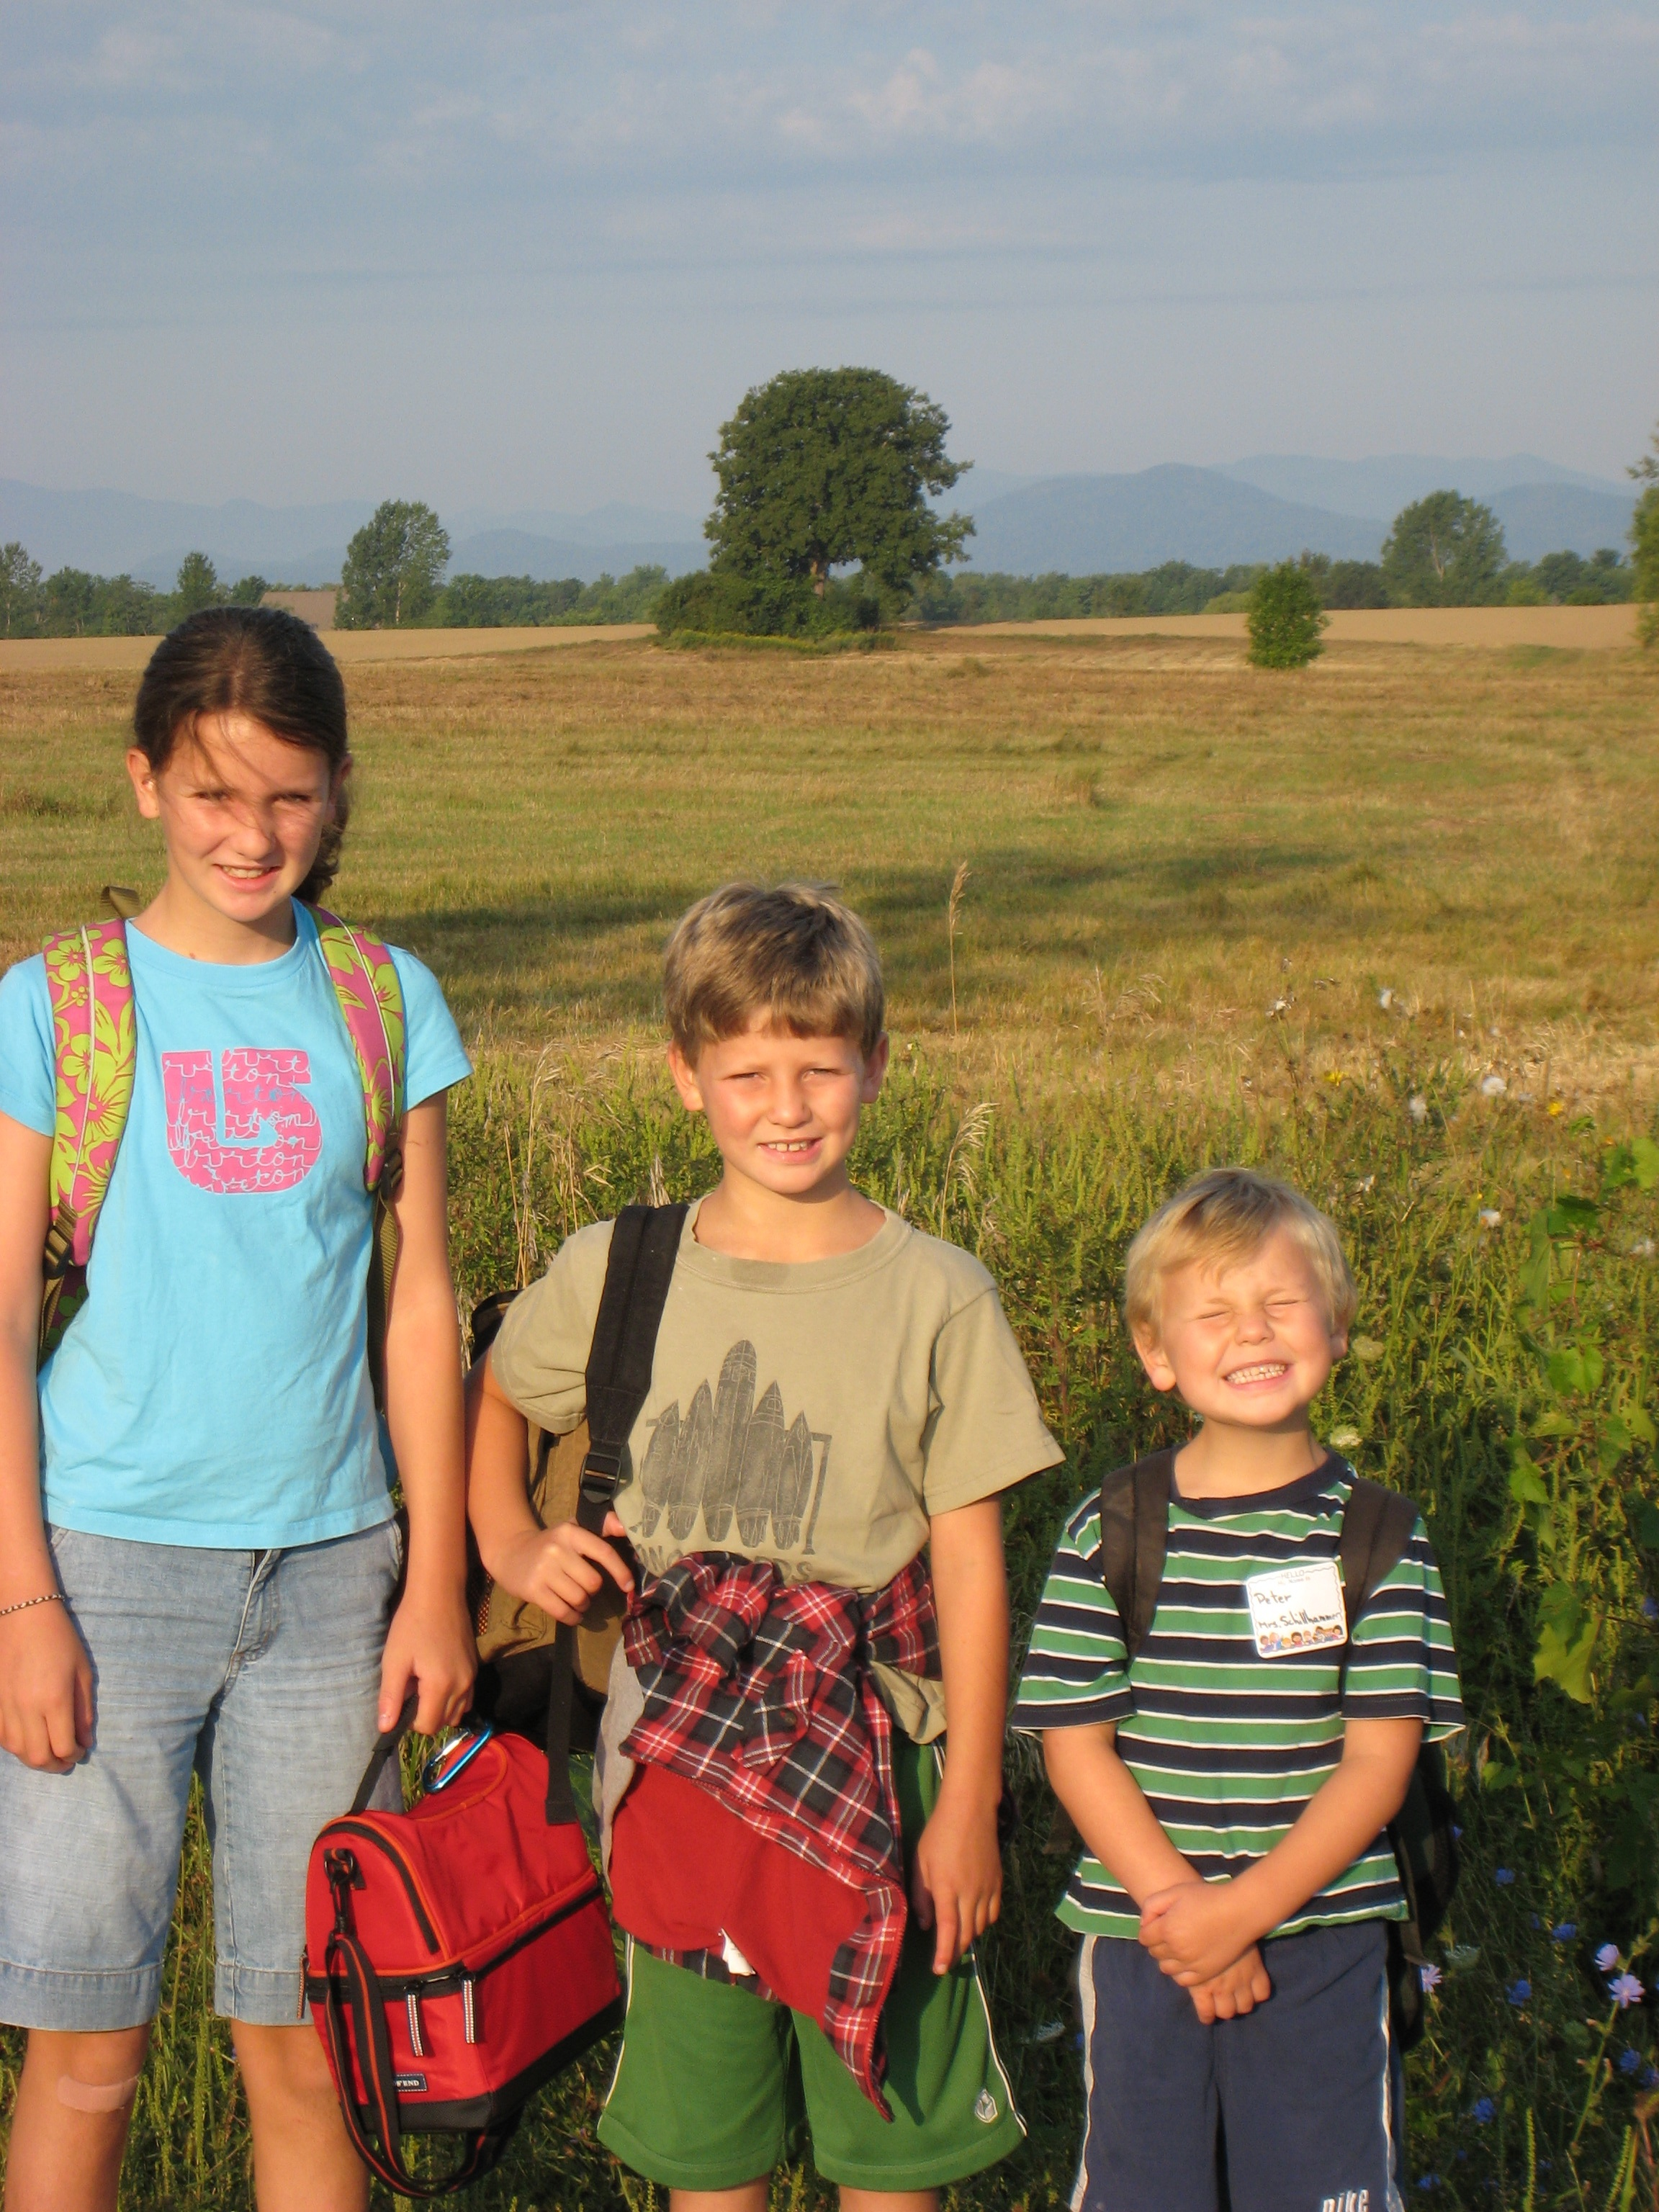 My children Madison, Ben and Peter have been to Uganda many times.